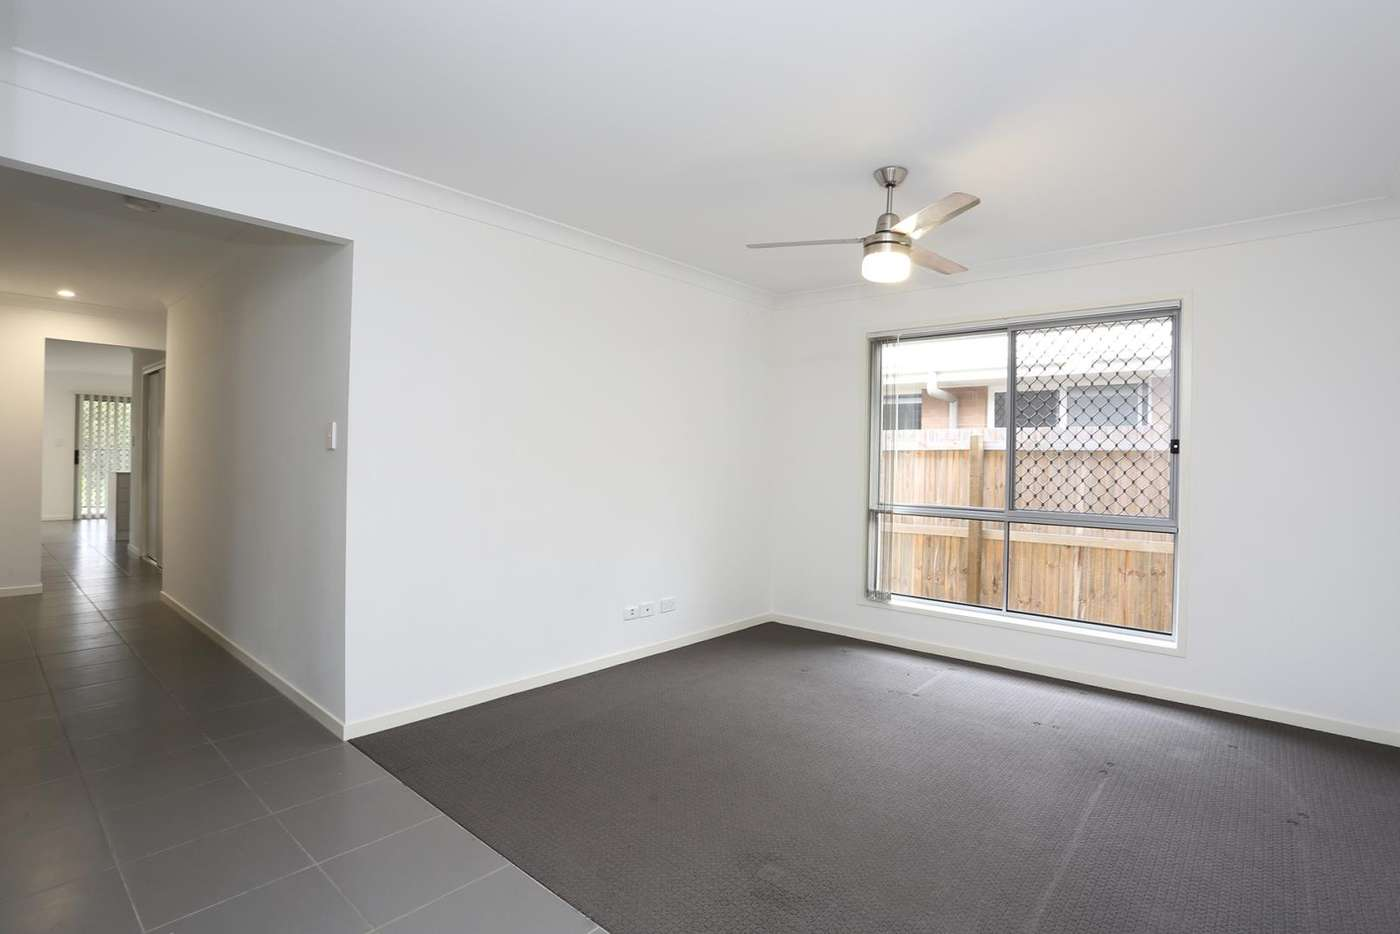 Sixth view of Homely house listing, 25 Tempera Place, Yarrabilba QLD 4207